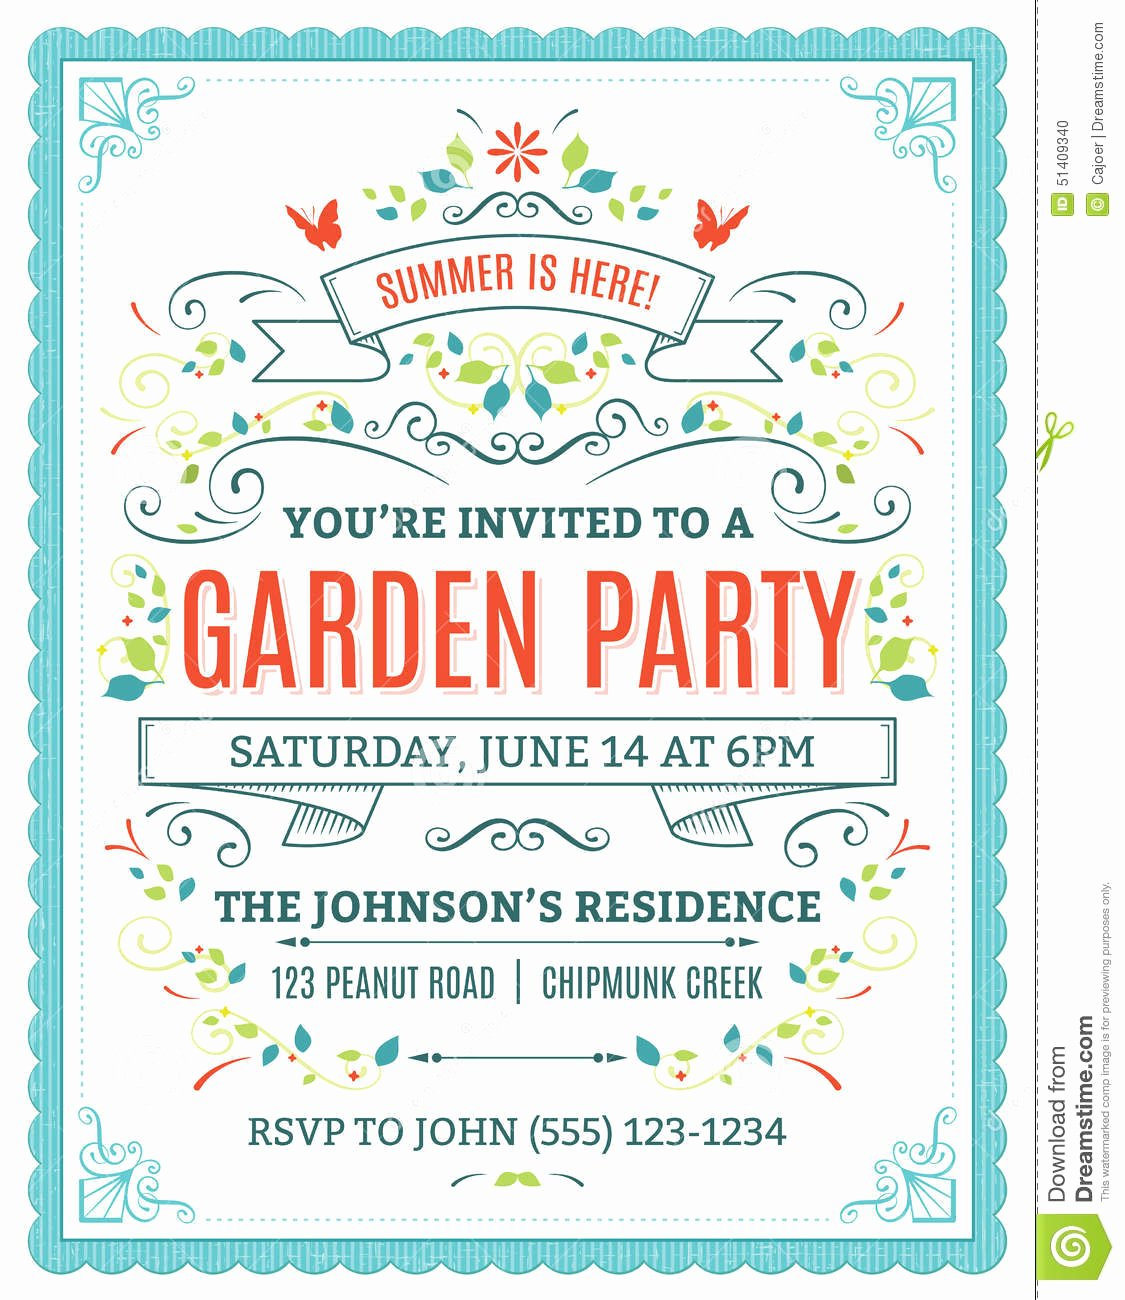 Garden Party Invite Template Inspirational Garden Party Invitation Stock Vector Image